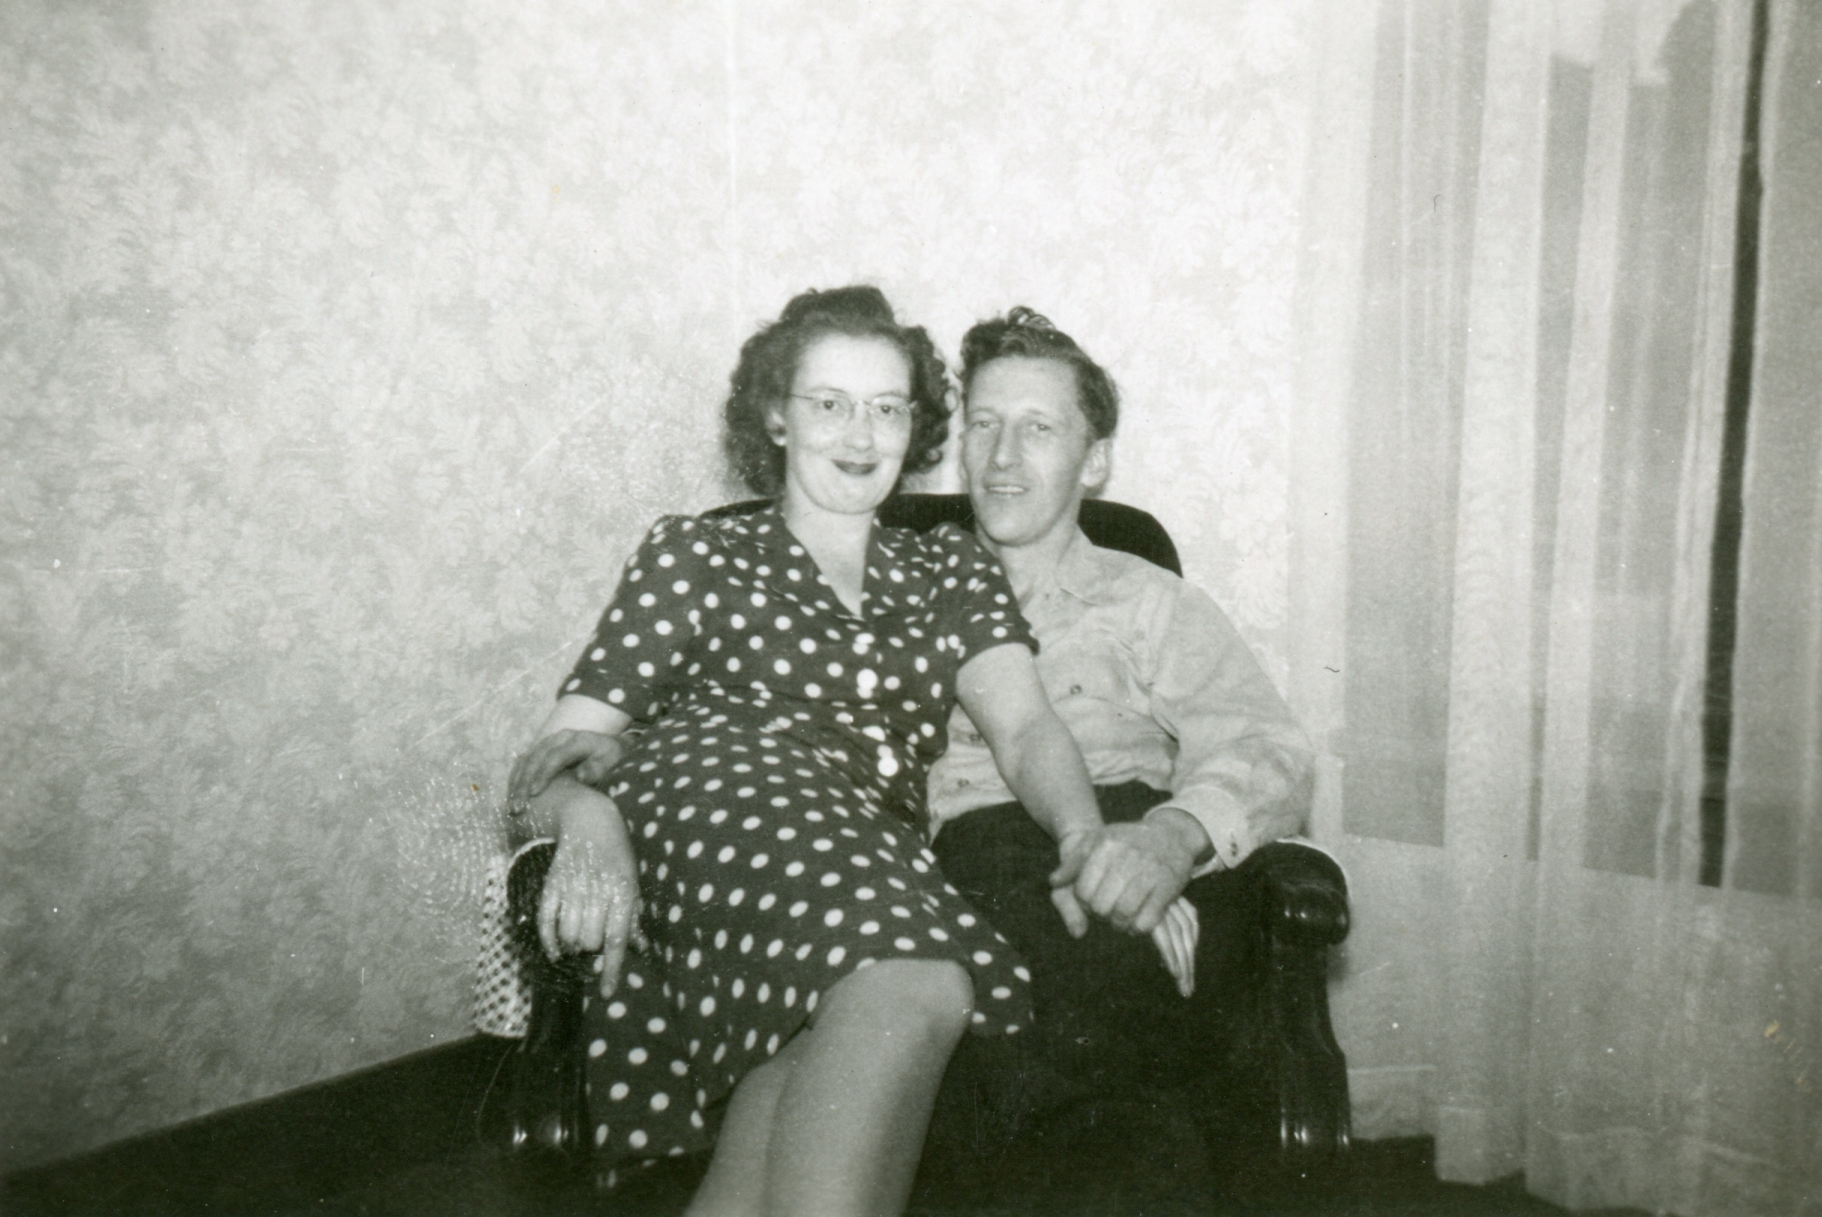 Carl and Lucille Luhrs, Late 1940s